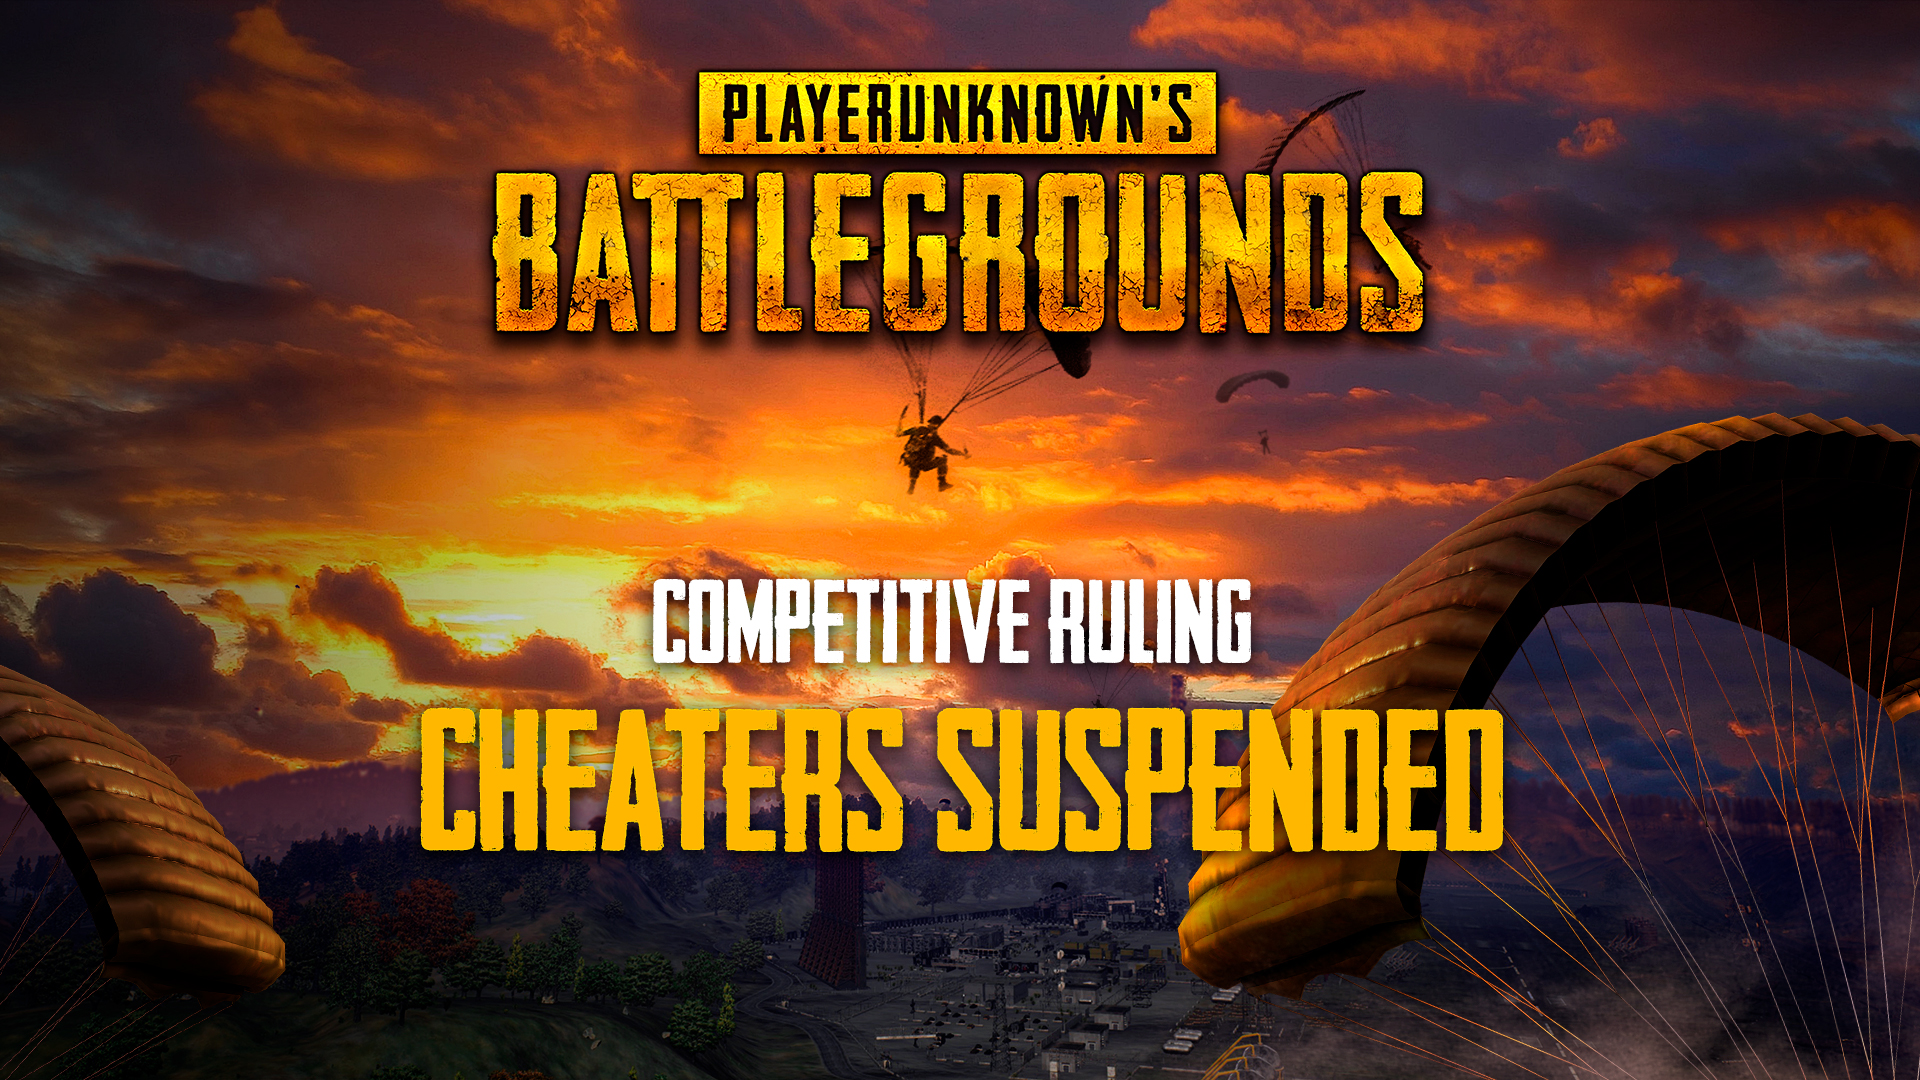 PUBG pro-players have been banned from competitive, including PEL